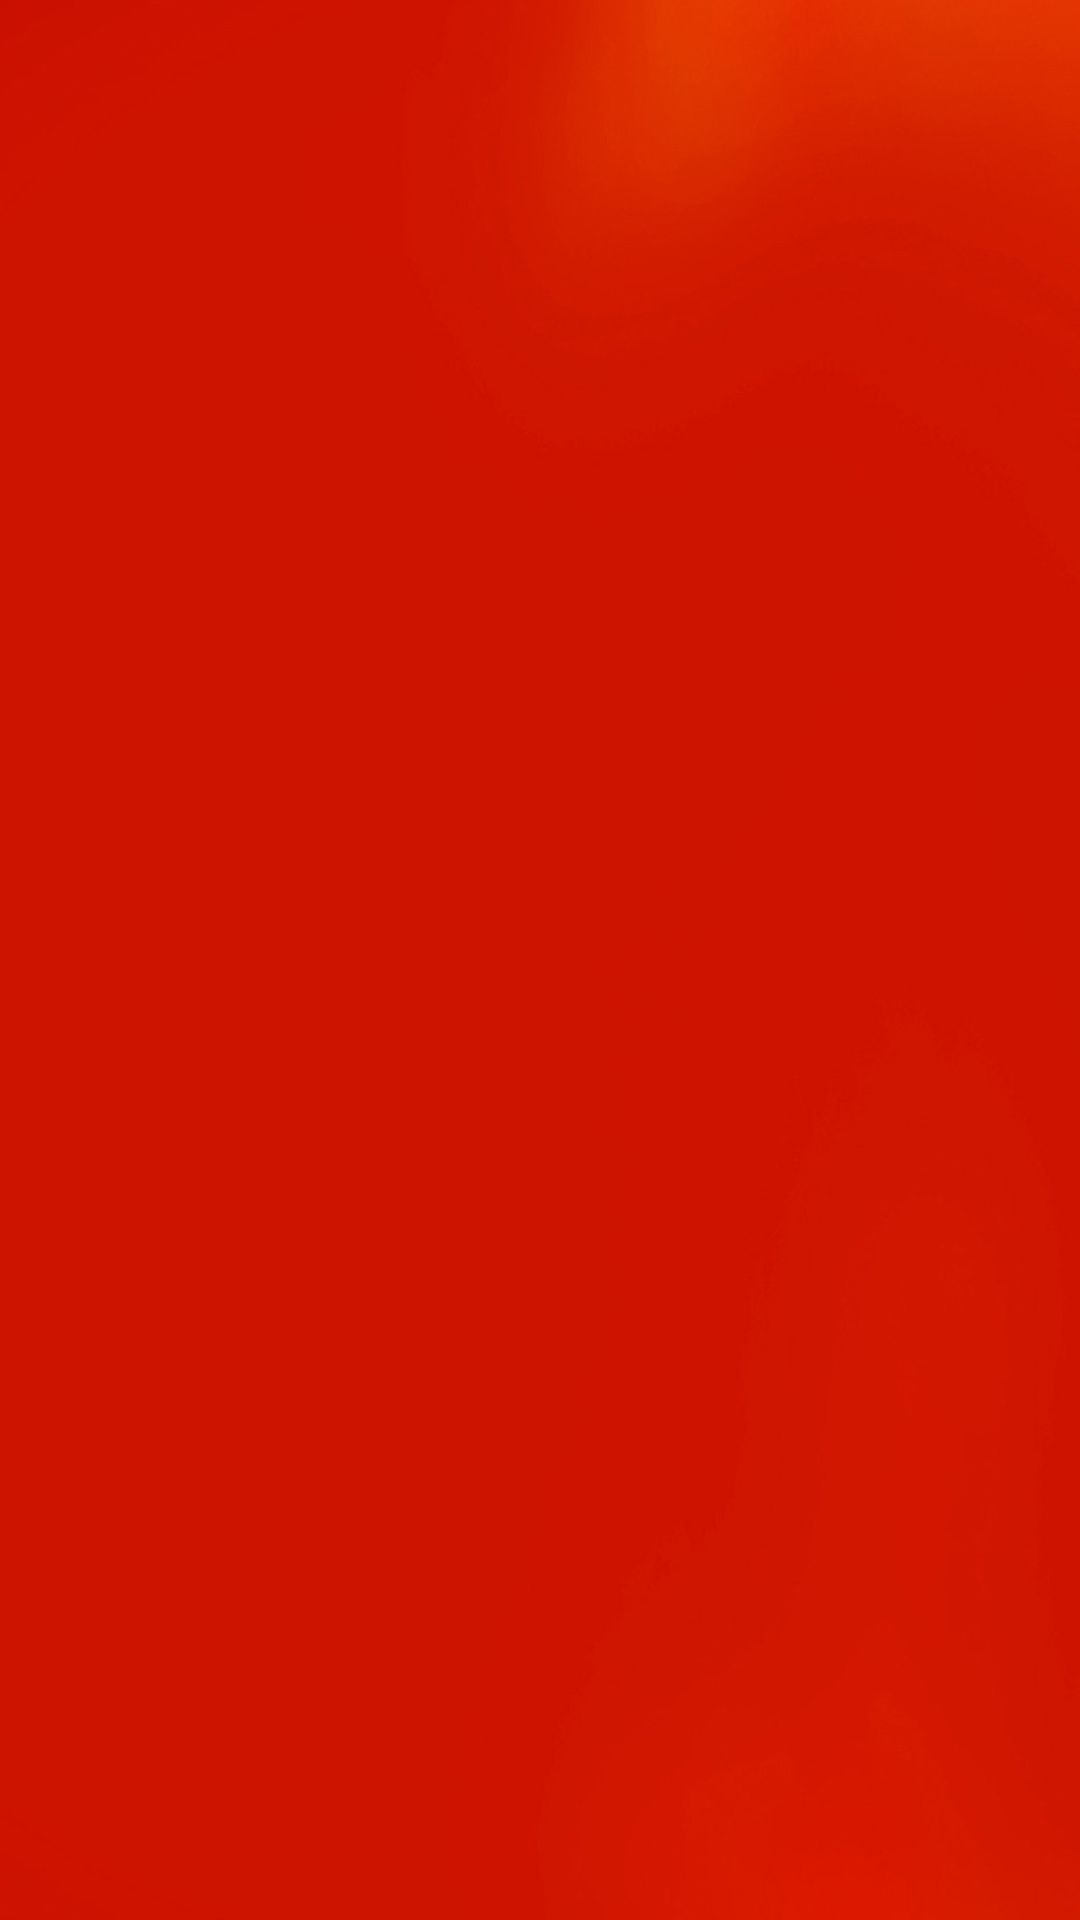 1080x1920 Free download Red Texture Samsung Galaxy S5 Wallpaper ...